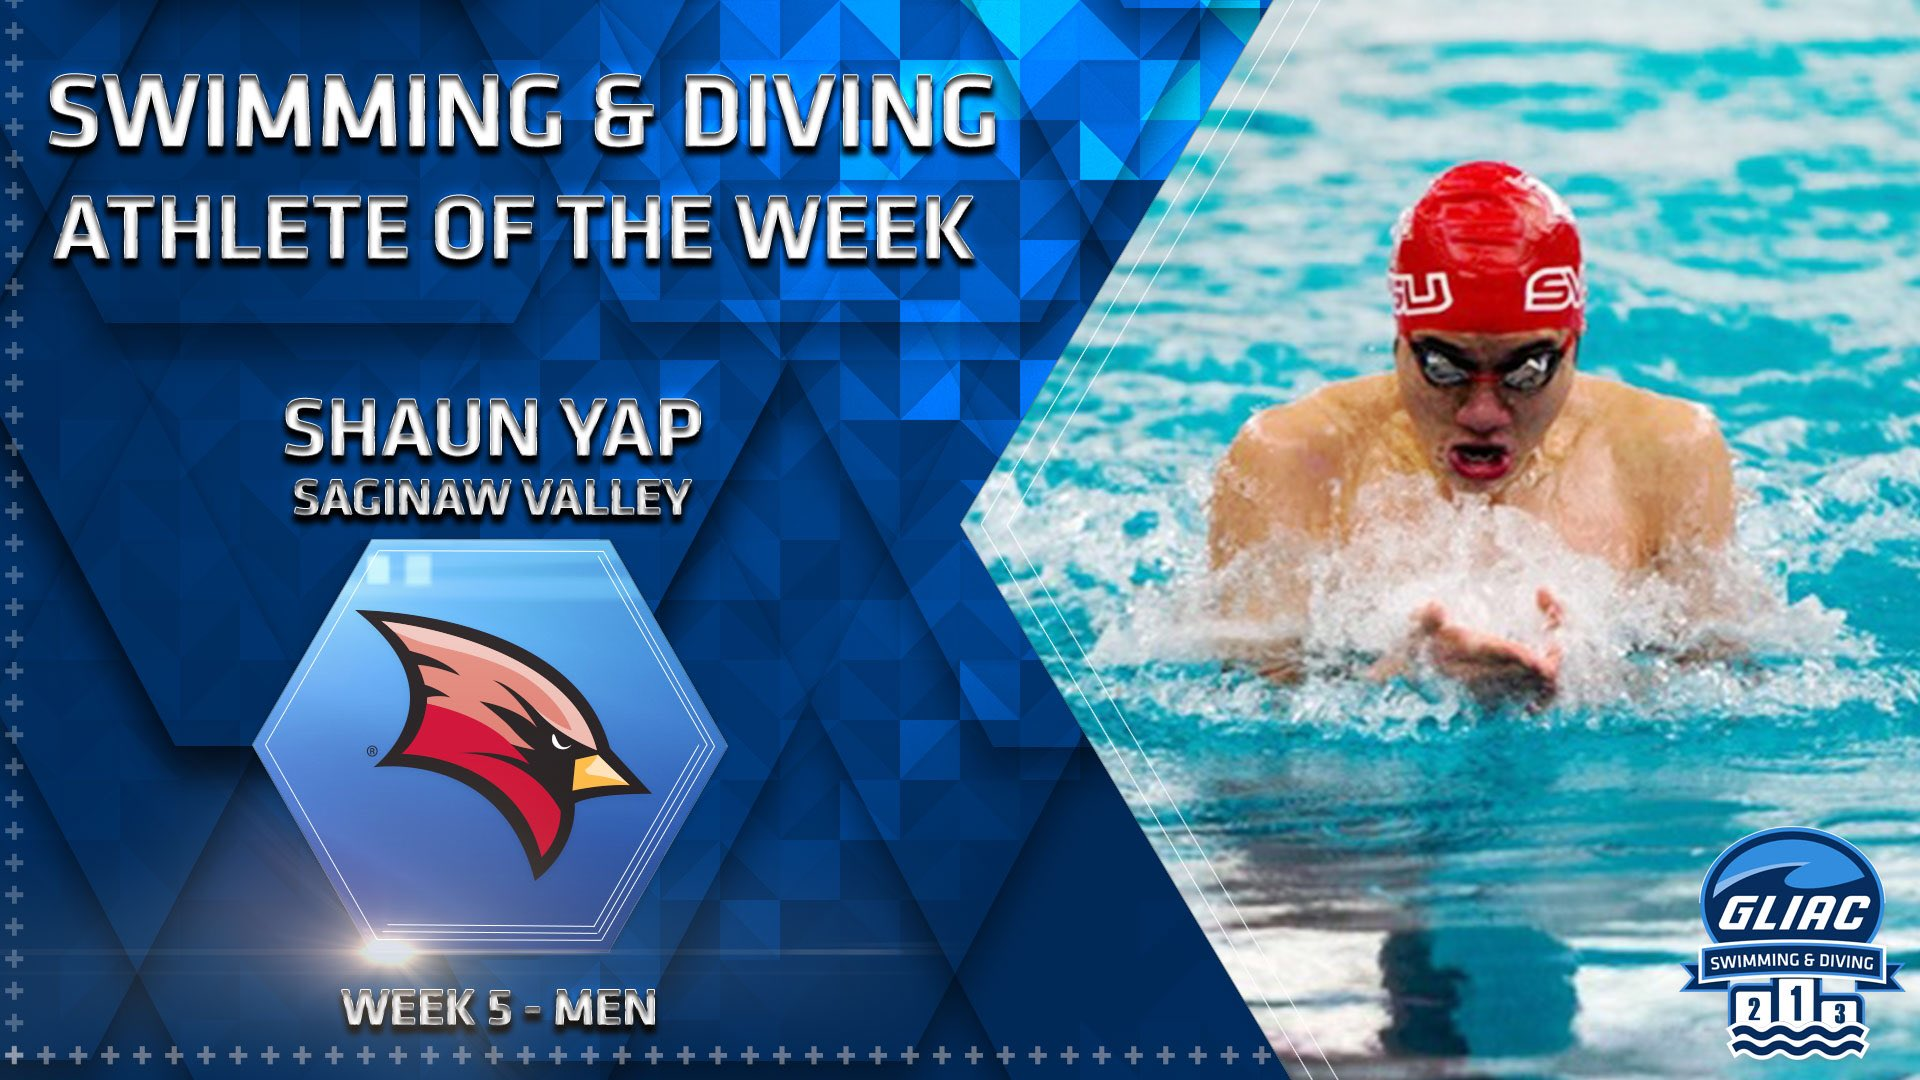 Shaun Yap Named GLIAC Male Athlete of the Week